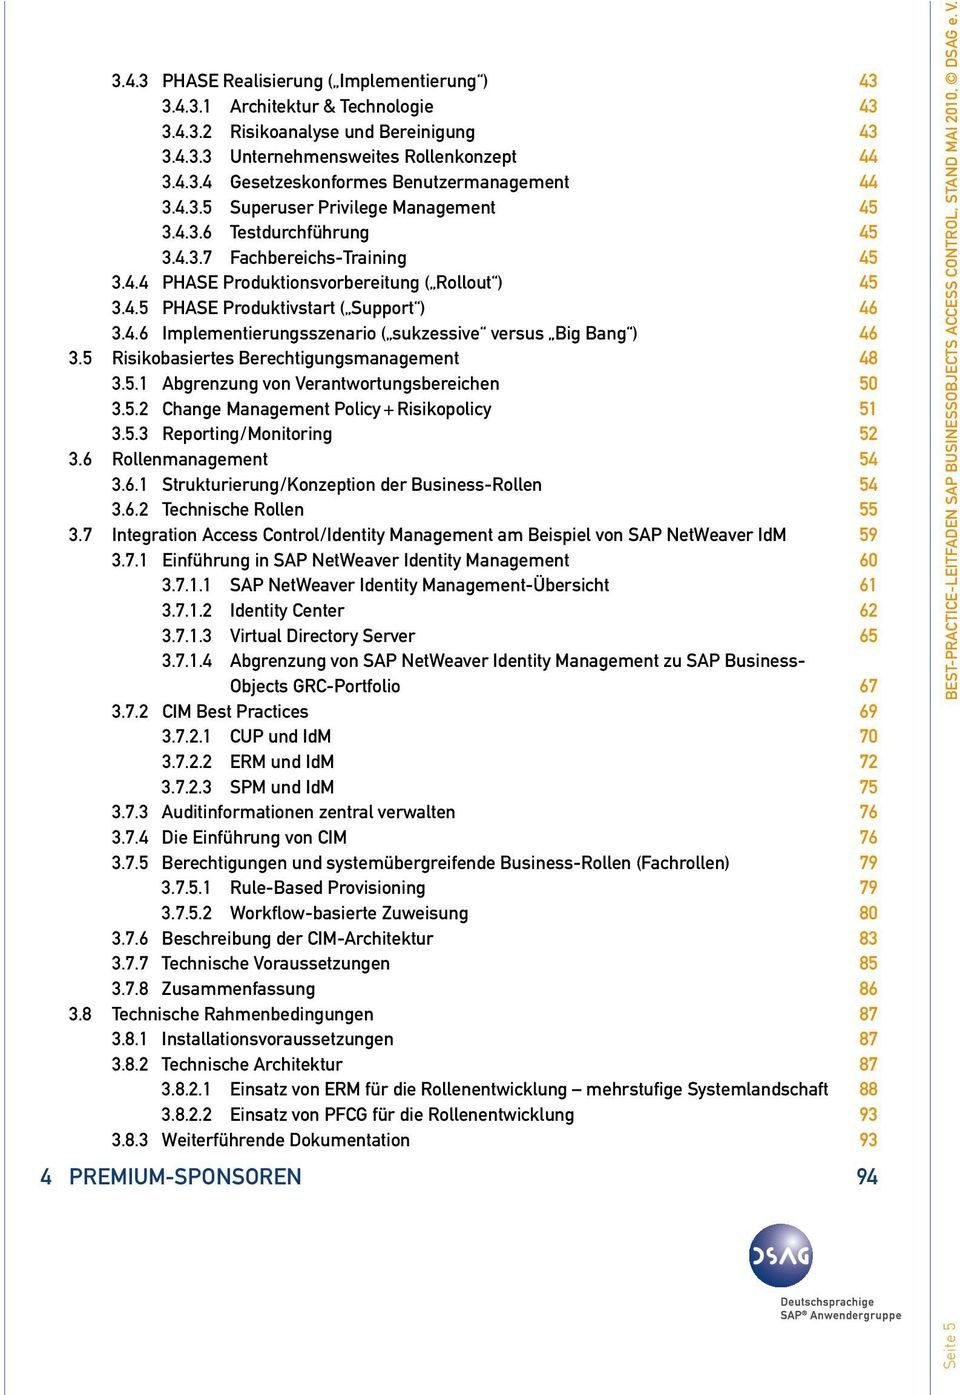 5 Risikobasiertes Berechtigungsmanagement 48 3.5.1 Abgrenzung von Verantwortungsbereichen 50 3.5.2 Change Management Policy + Risikopolicy 51 3.5.3 Reporting / Monitoring 52 3.6 Rollenmanagement 54 3.